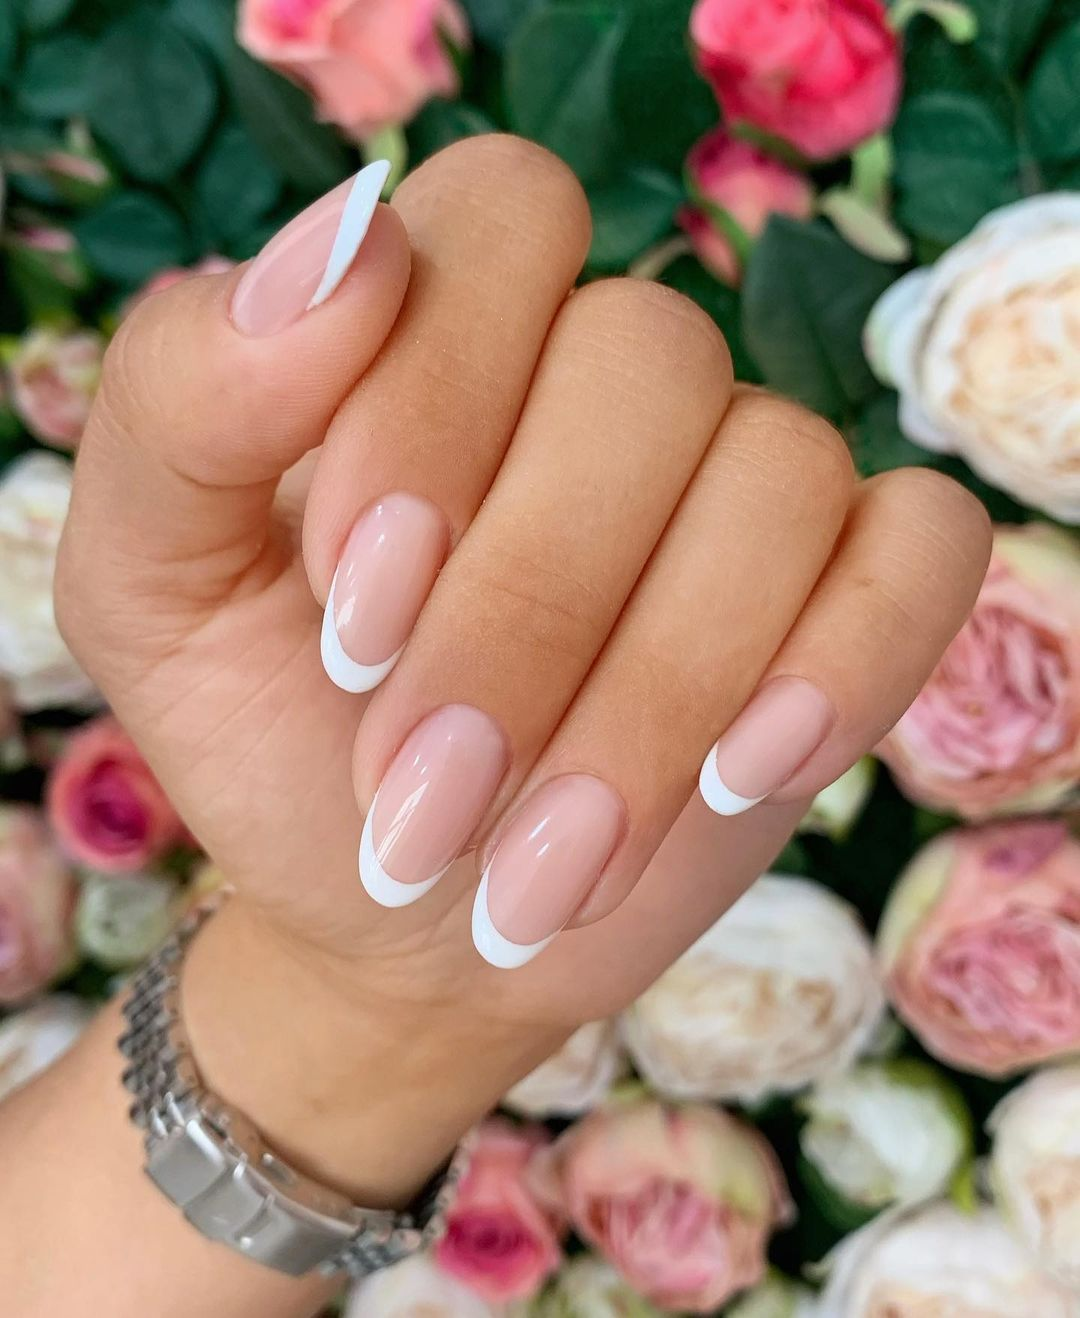 French Manicure Designs 2022